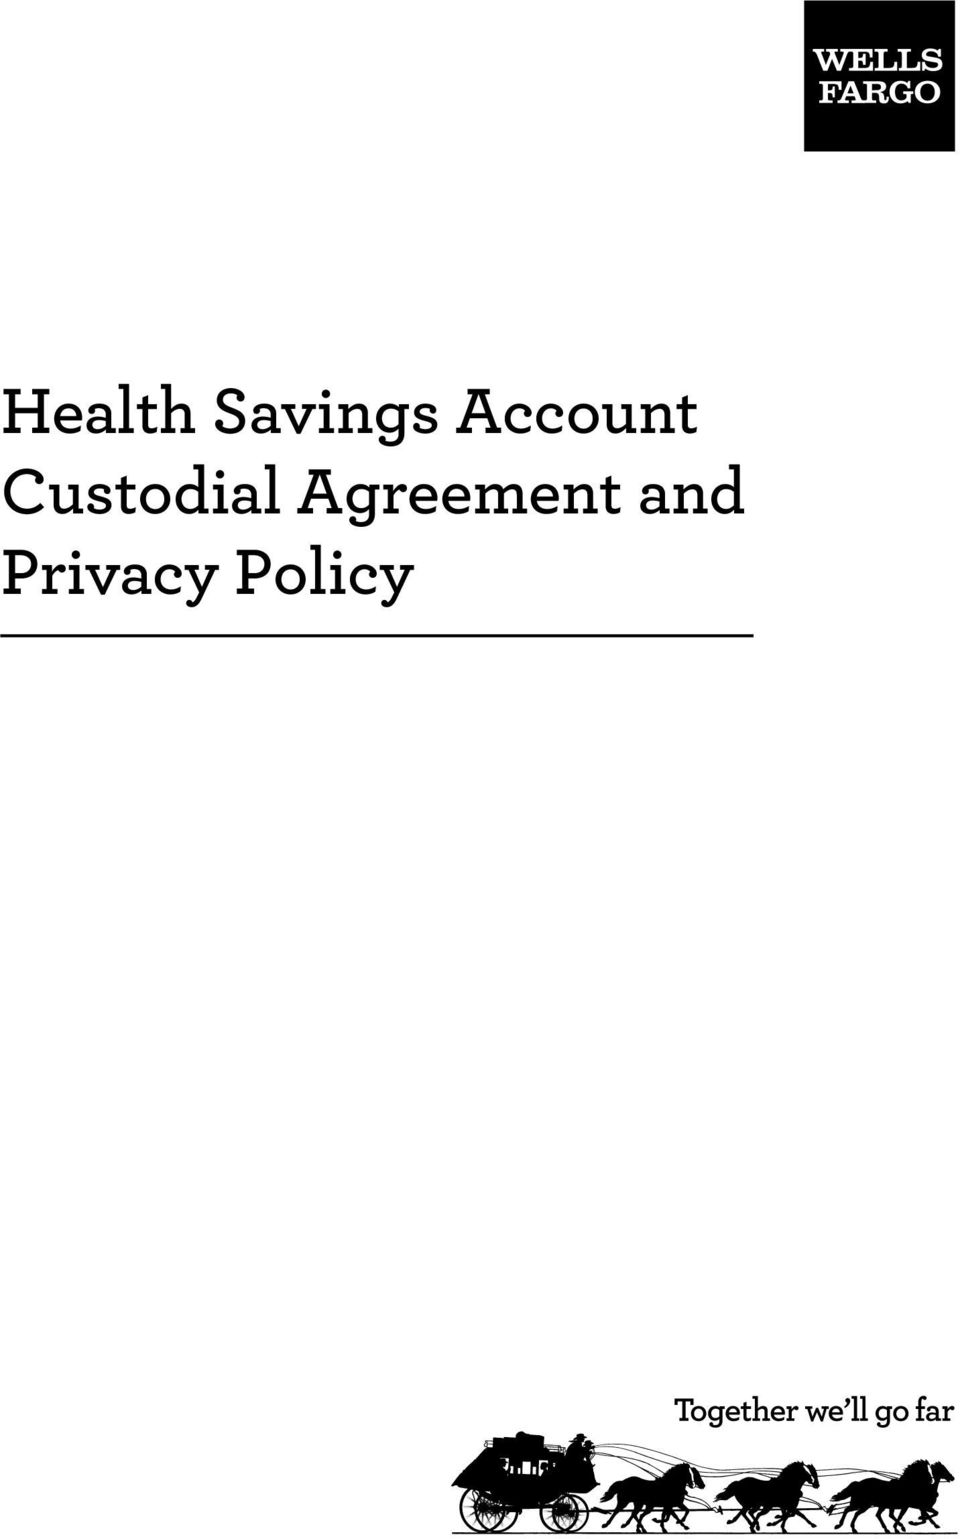 Health Savings Account Custodial Agreement and Privacy